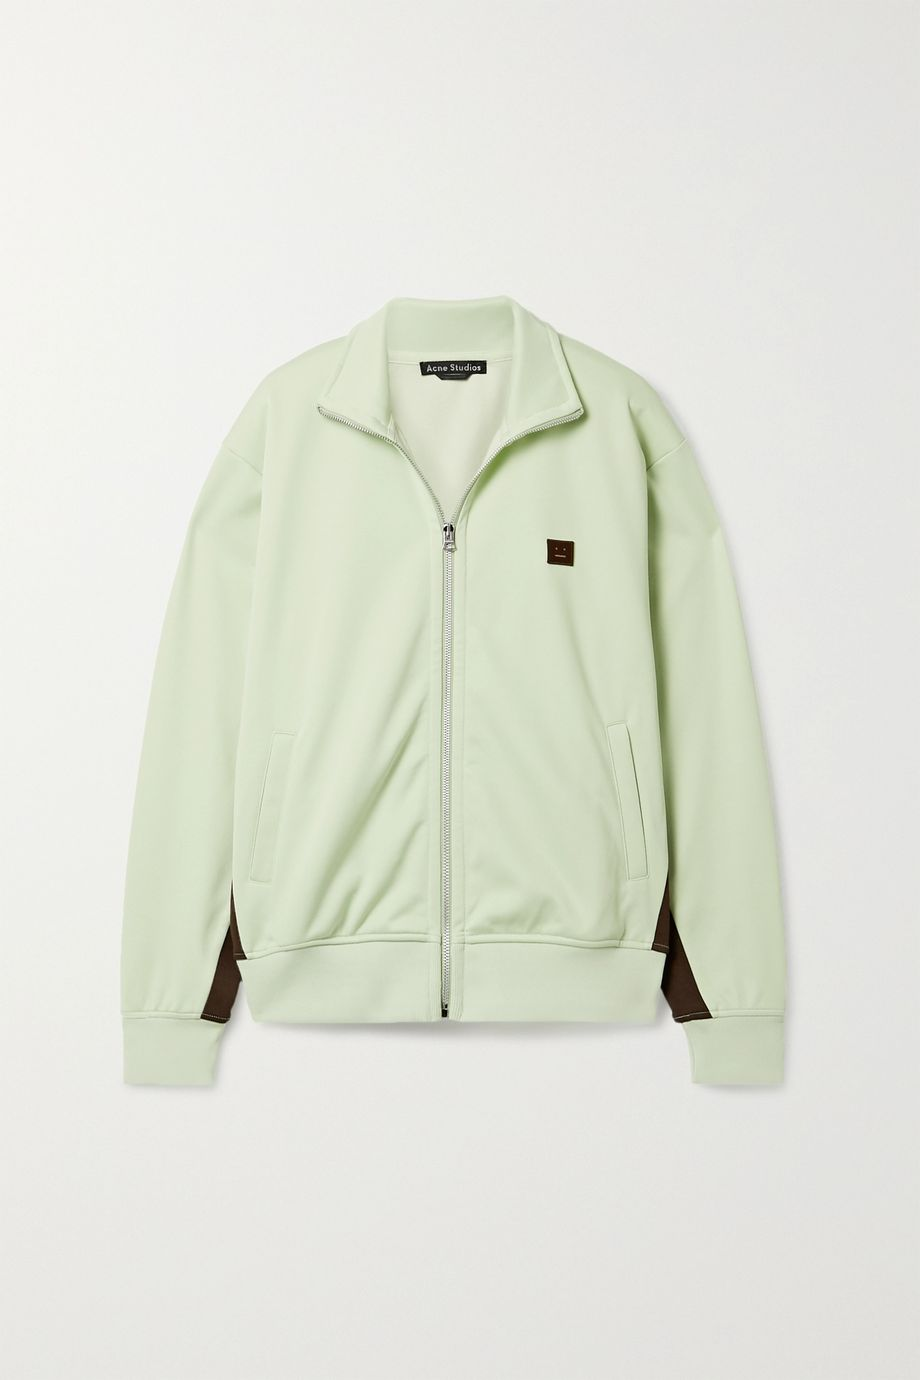 Acne Studios Appliquéd striped stretch-jersey track jacket